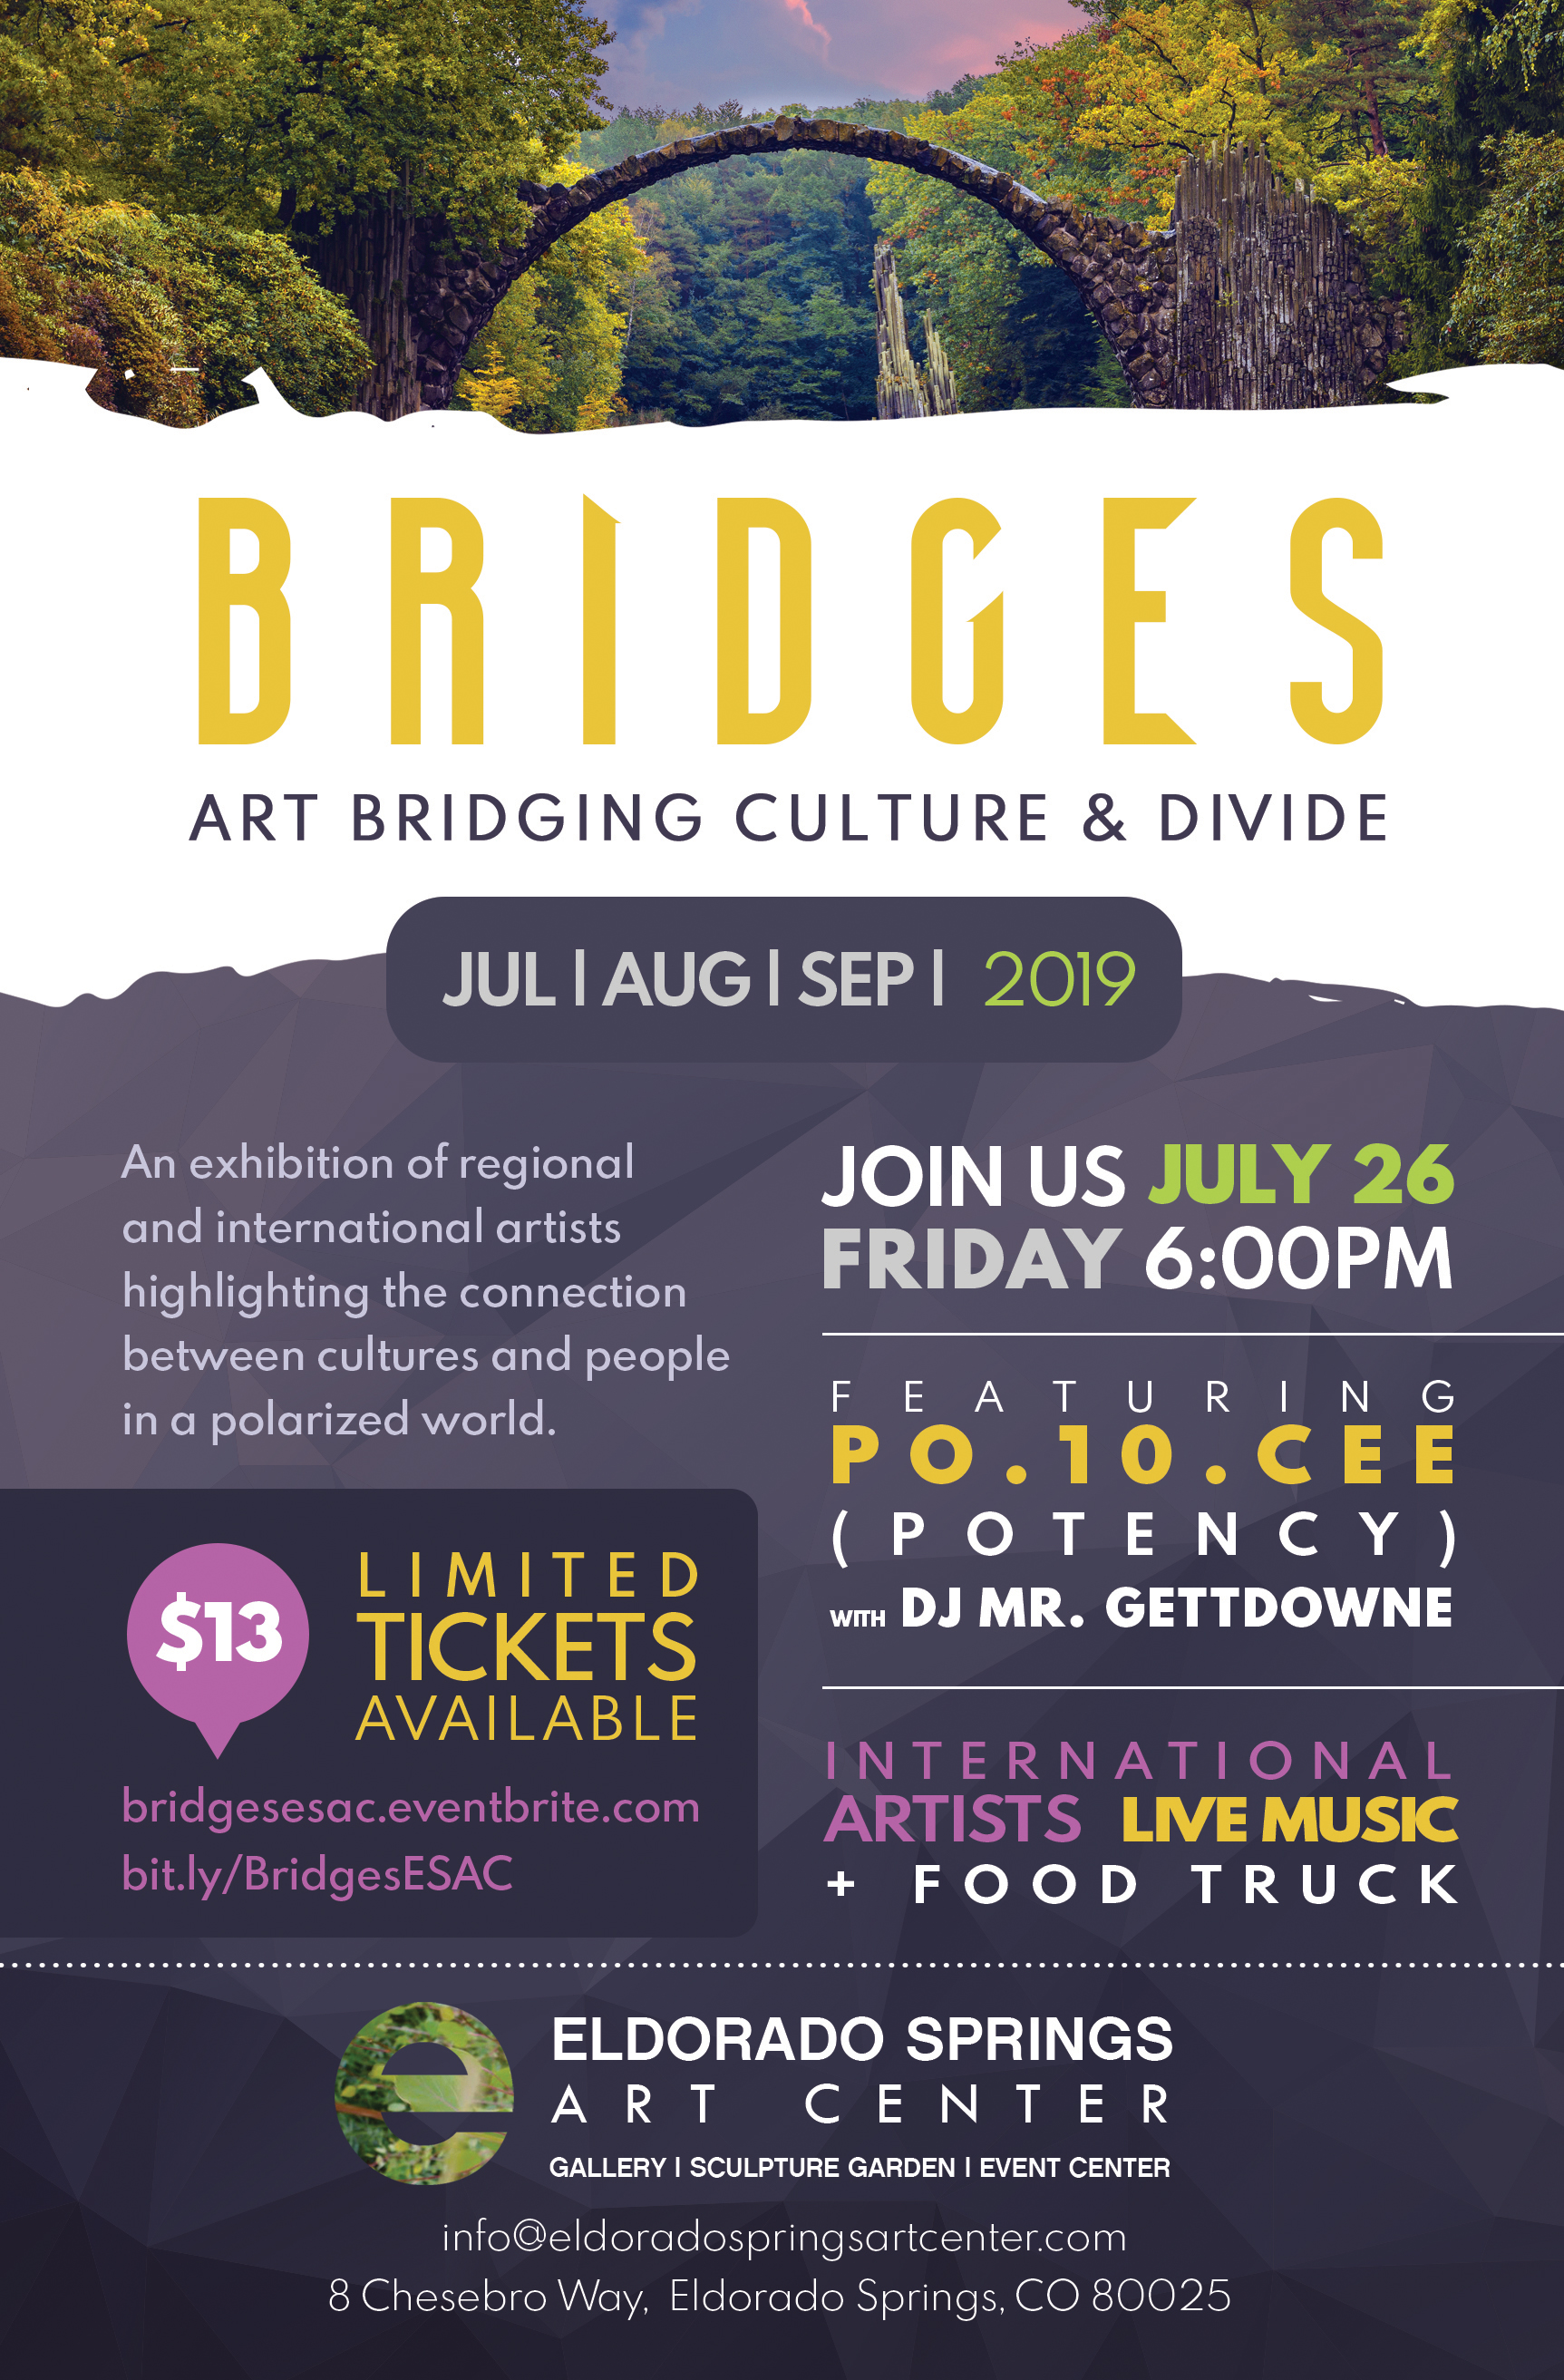 An exhibition of regional and international artists highlighting the connection between cultures and people in a polarized world. - Live Music from Po.10.Cee (Potency) and Dj Mr. Gettdowne , Magical Location, Cultural Expansion, Food Truck and Drinks